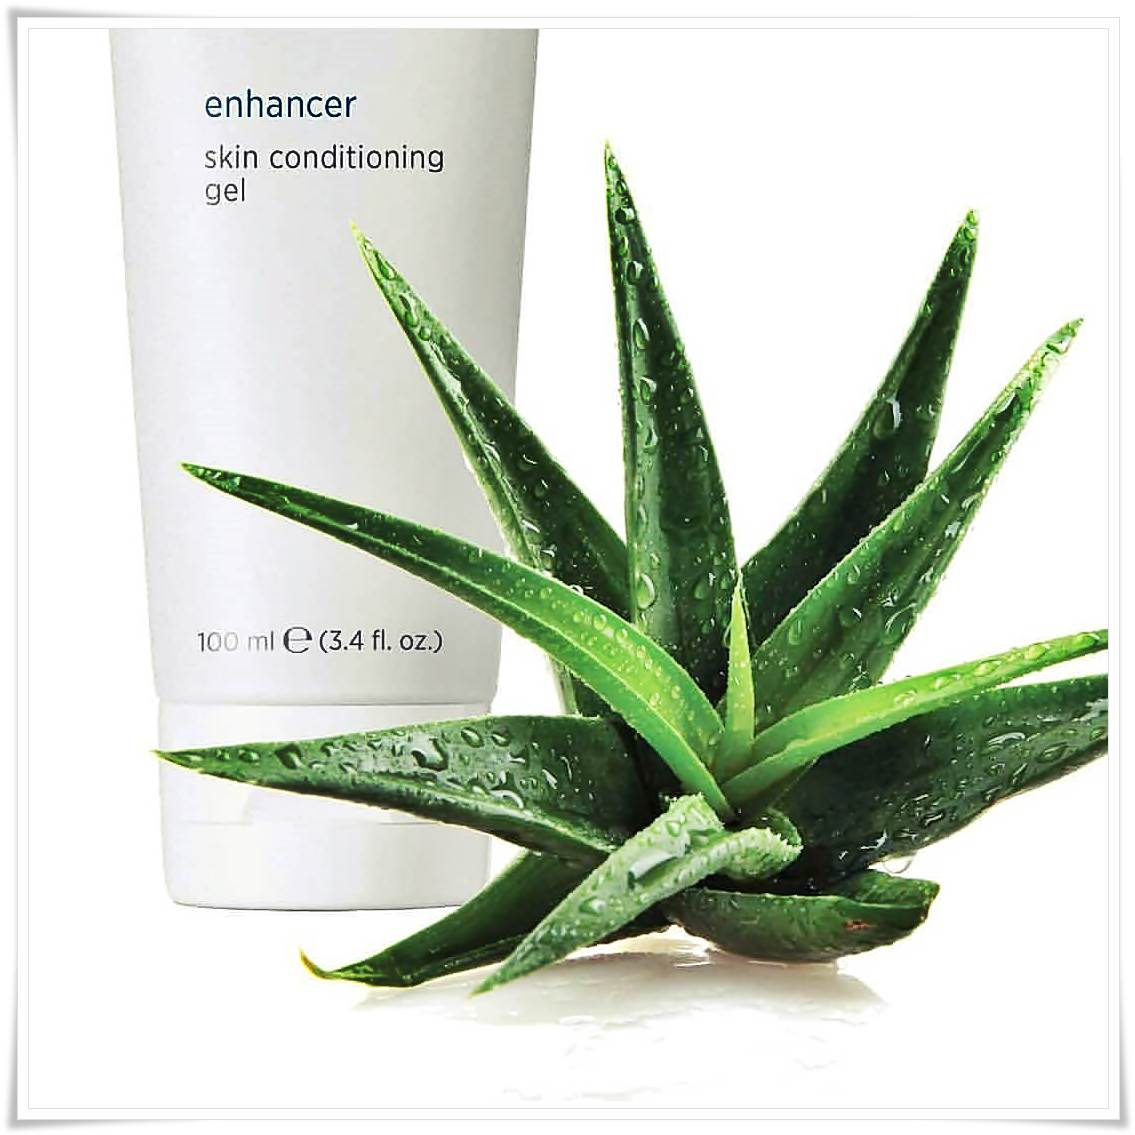 Enhancer skin conditioning gel Nu Skin